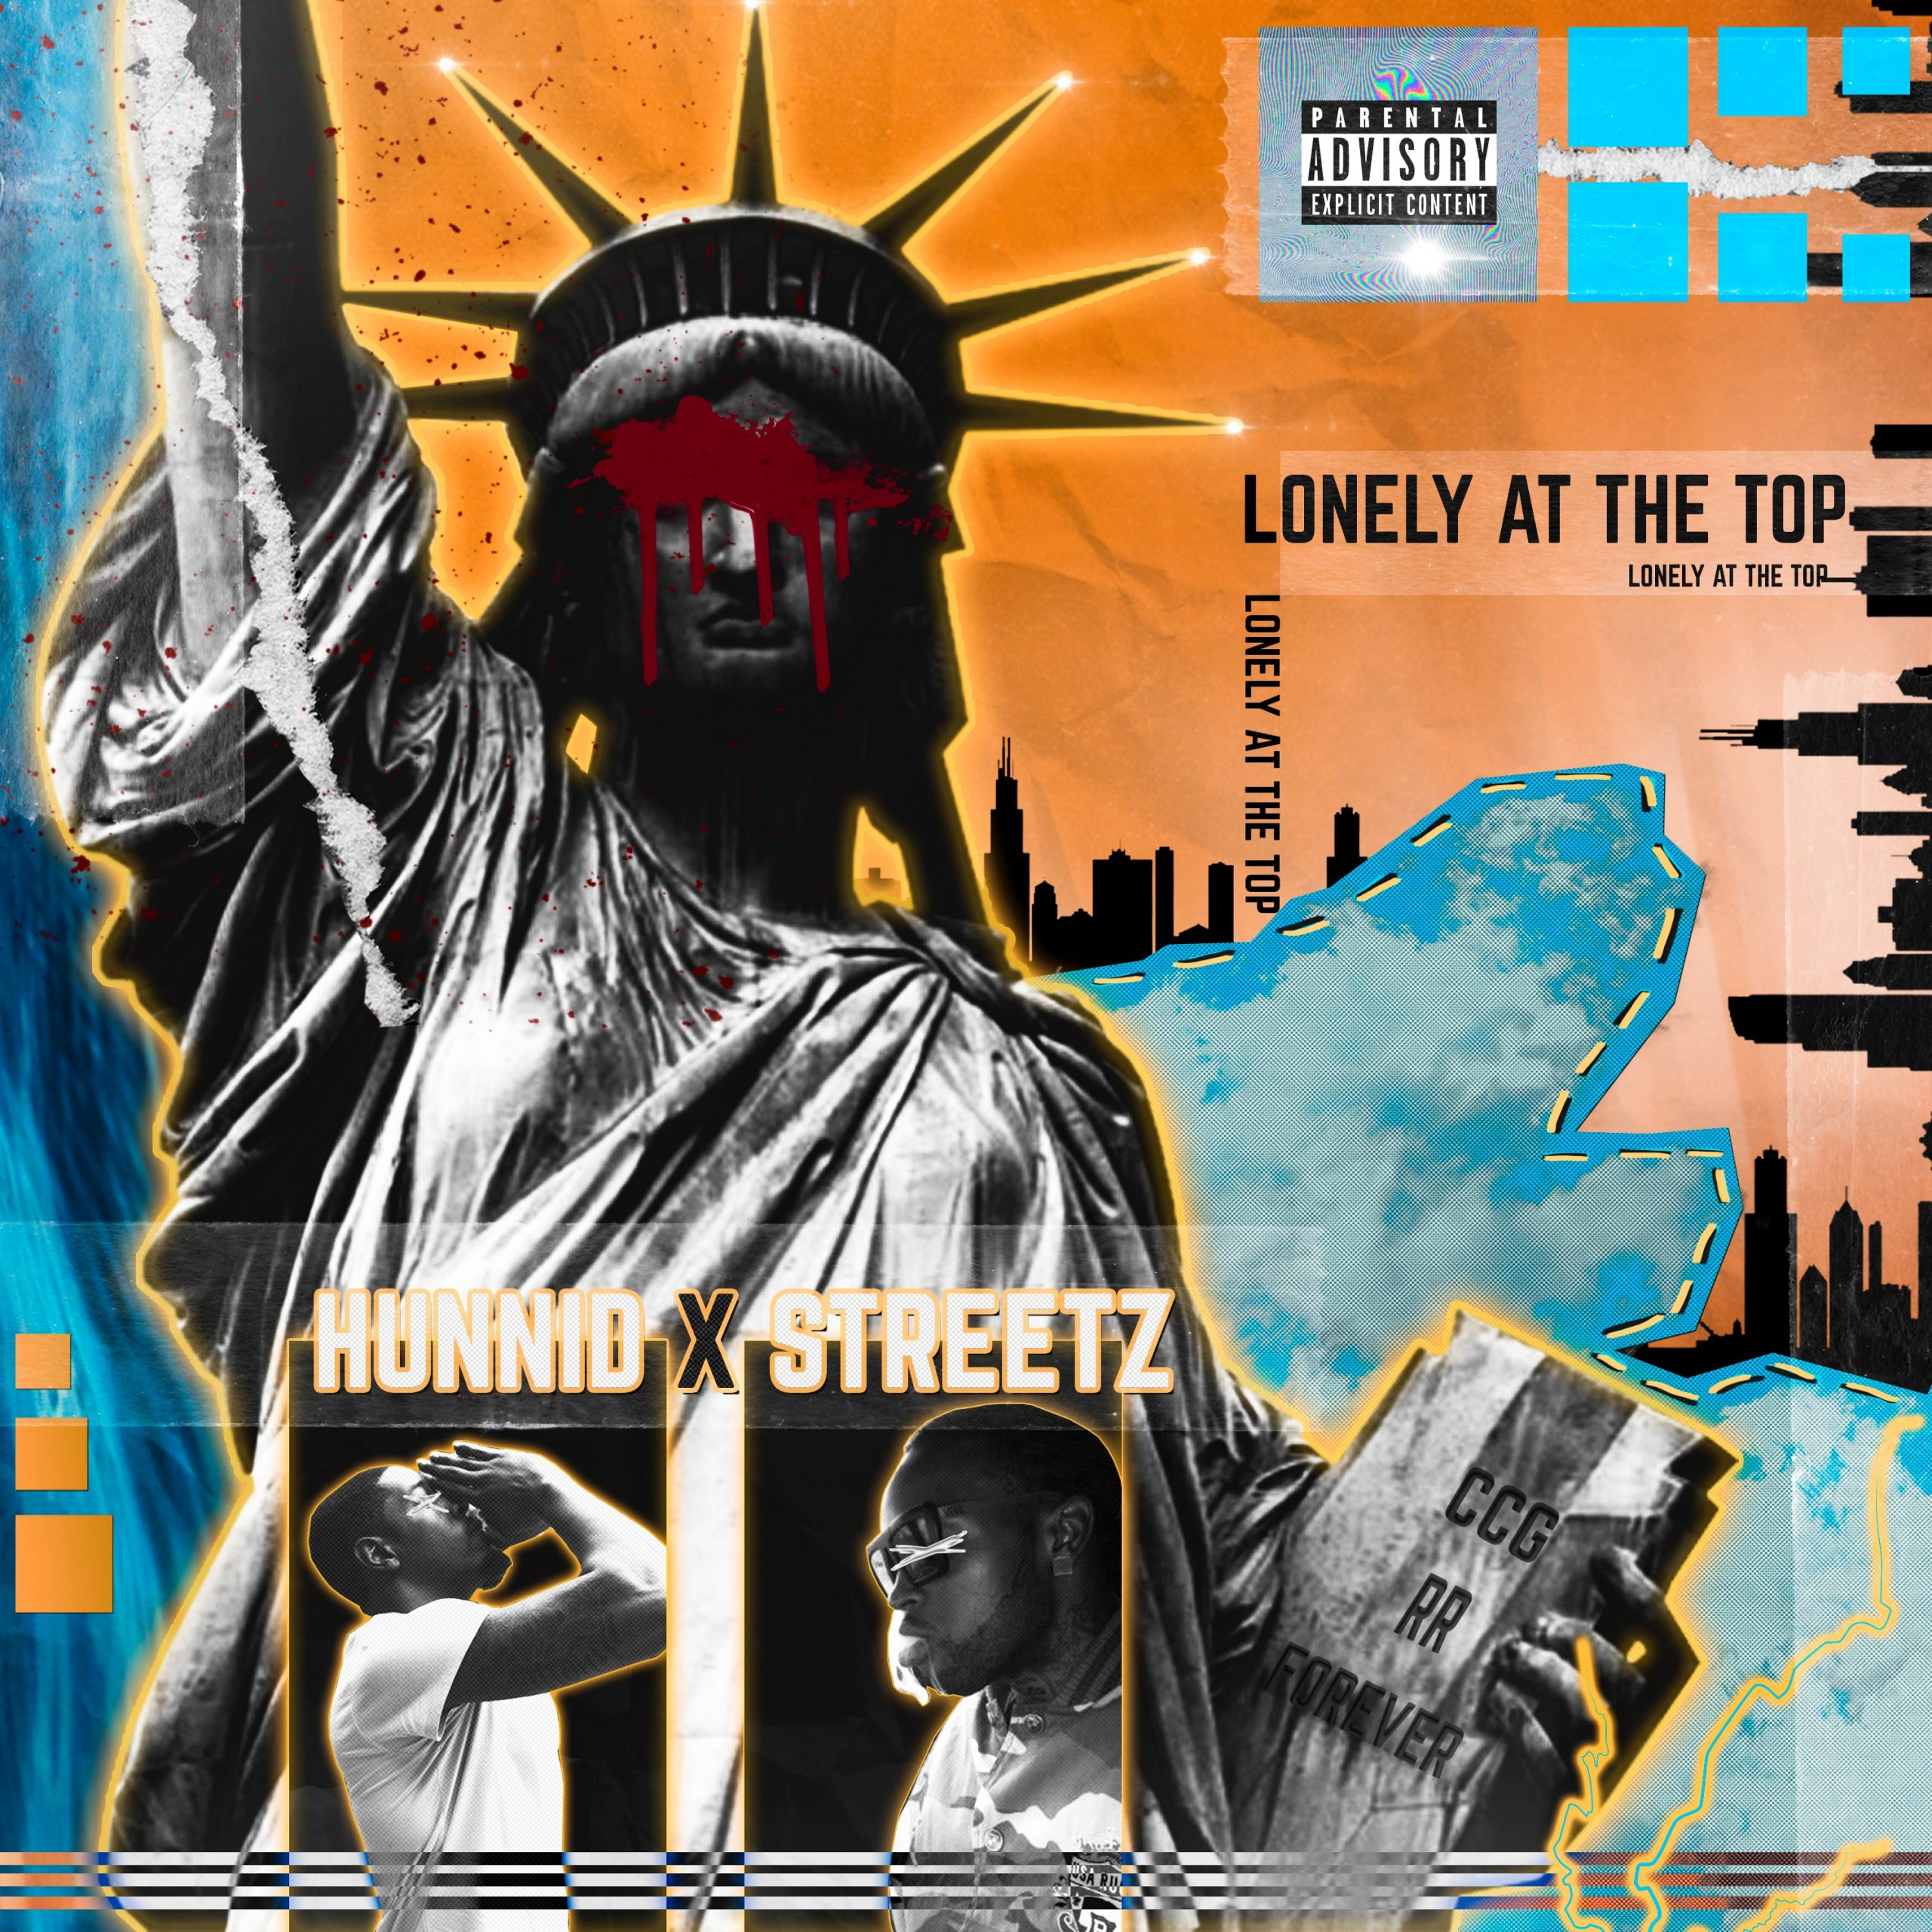 Hunnid x Streetz – Lonely At The Top